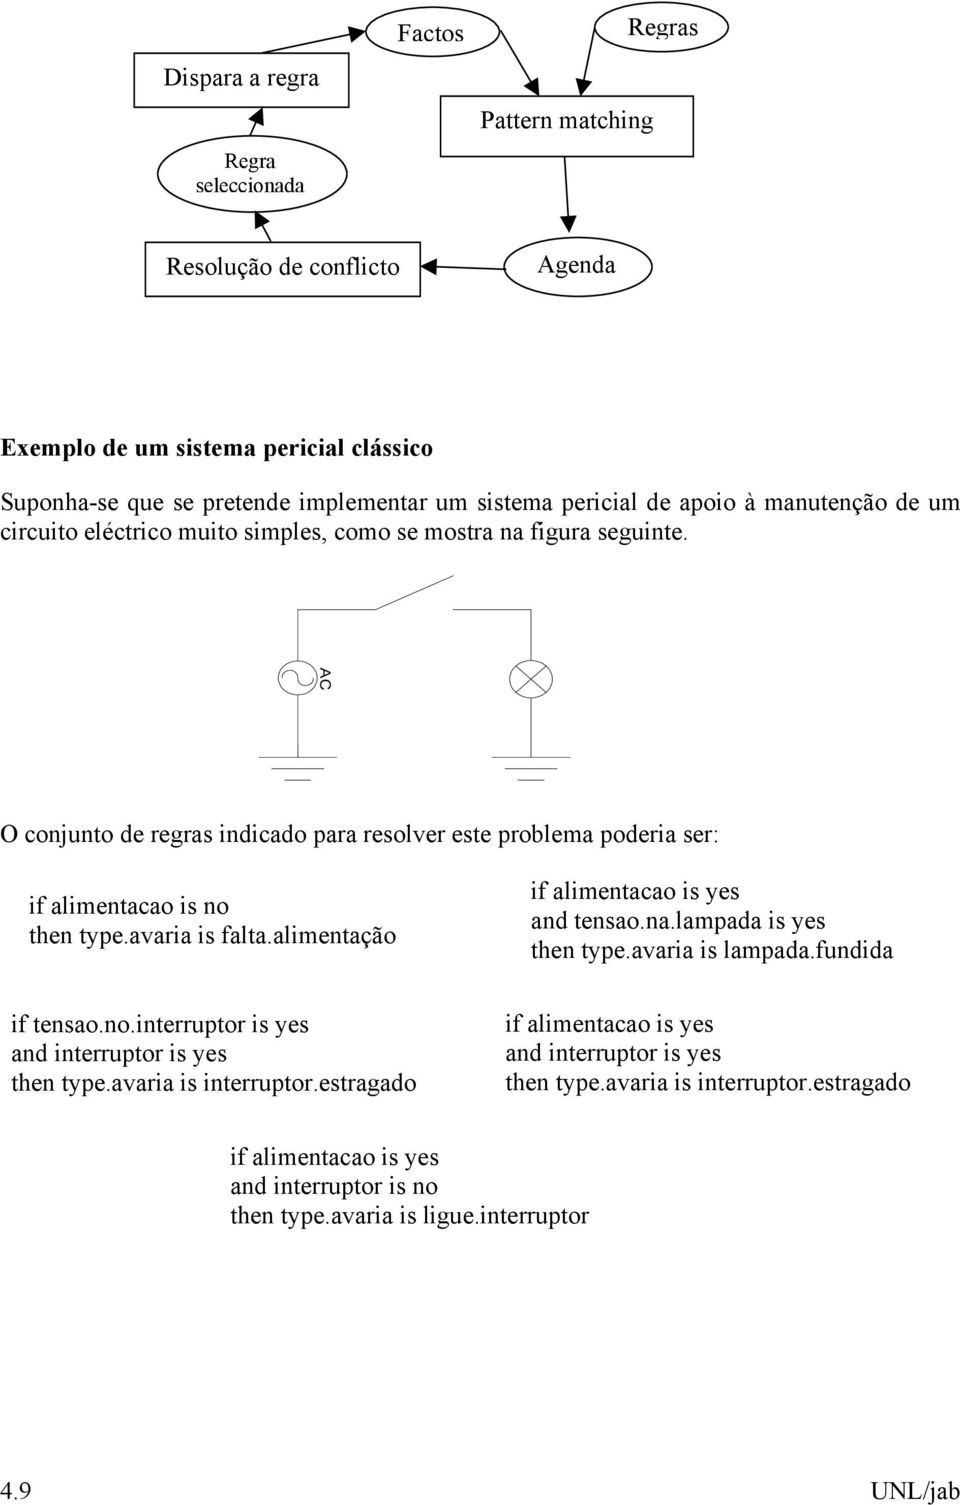 AC O conjunto de regras indicado para resolver este problema poderia ser: if alimentacao is no then type.avaria is falta.alimentação if tensao.no.interruptor is yes and interruptor is yes then type.